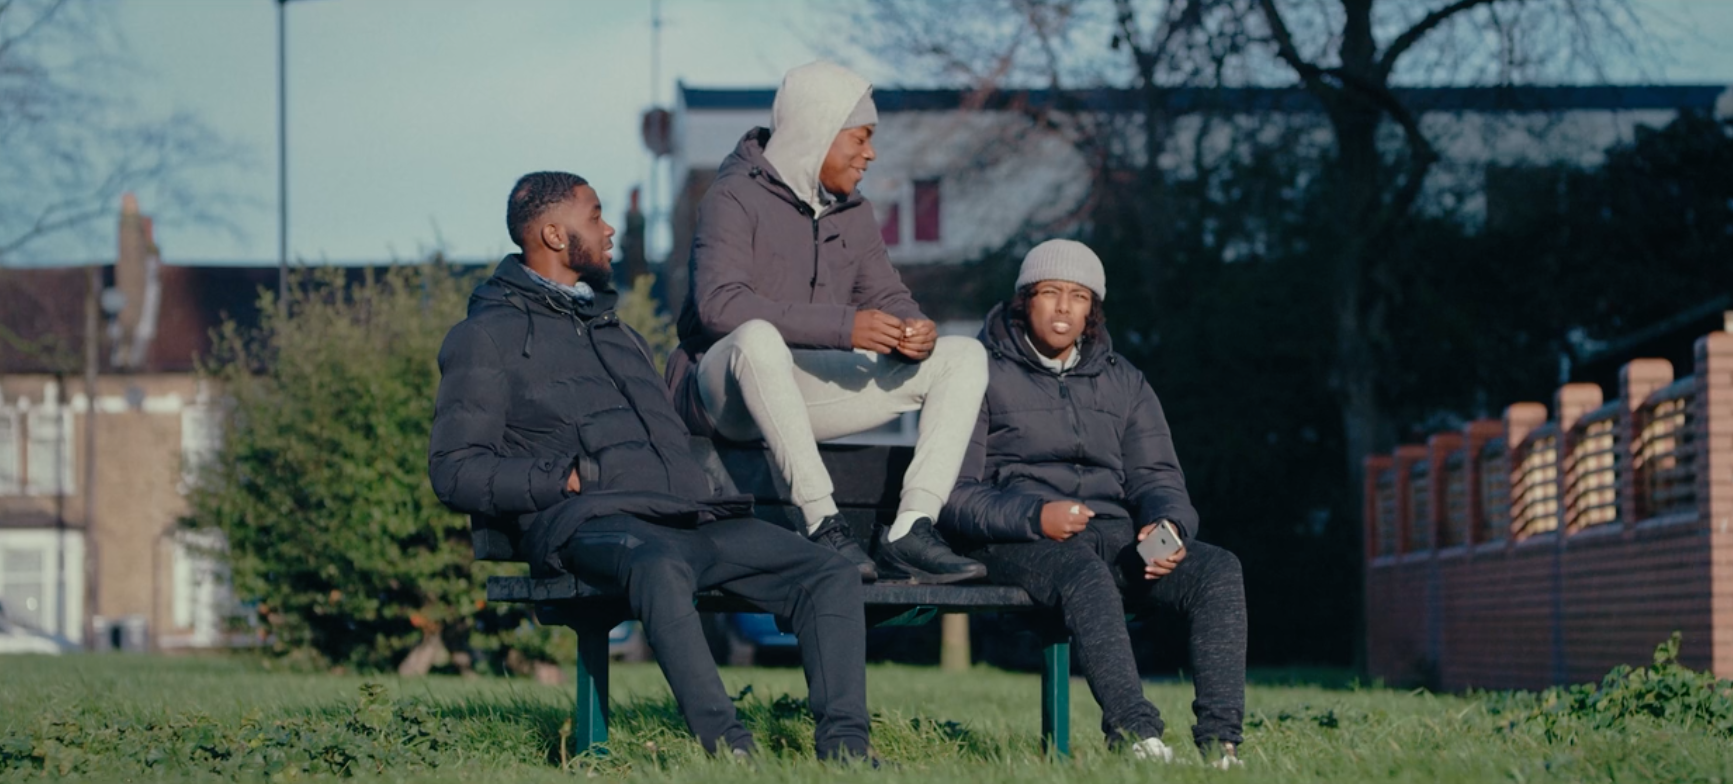 Image from 'I'm Out' for the Haringey Council